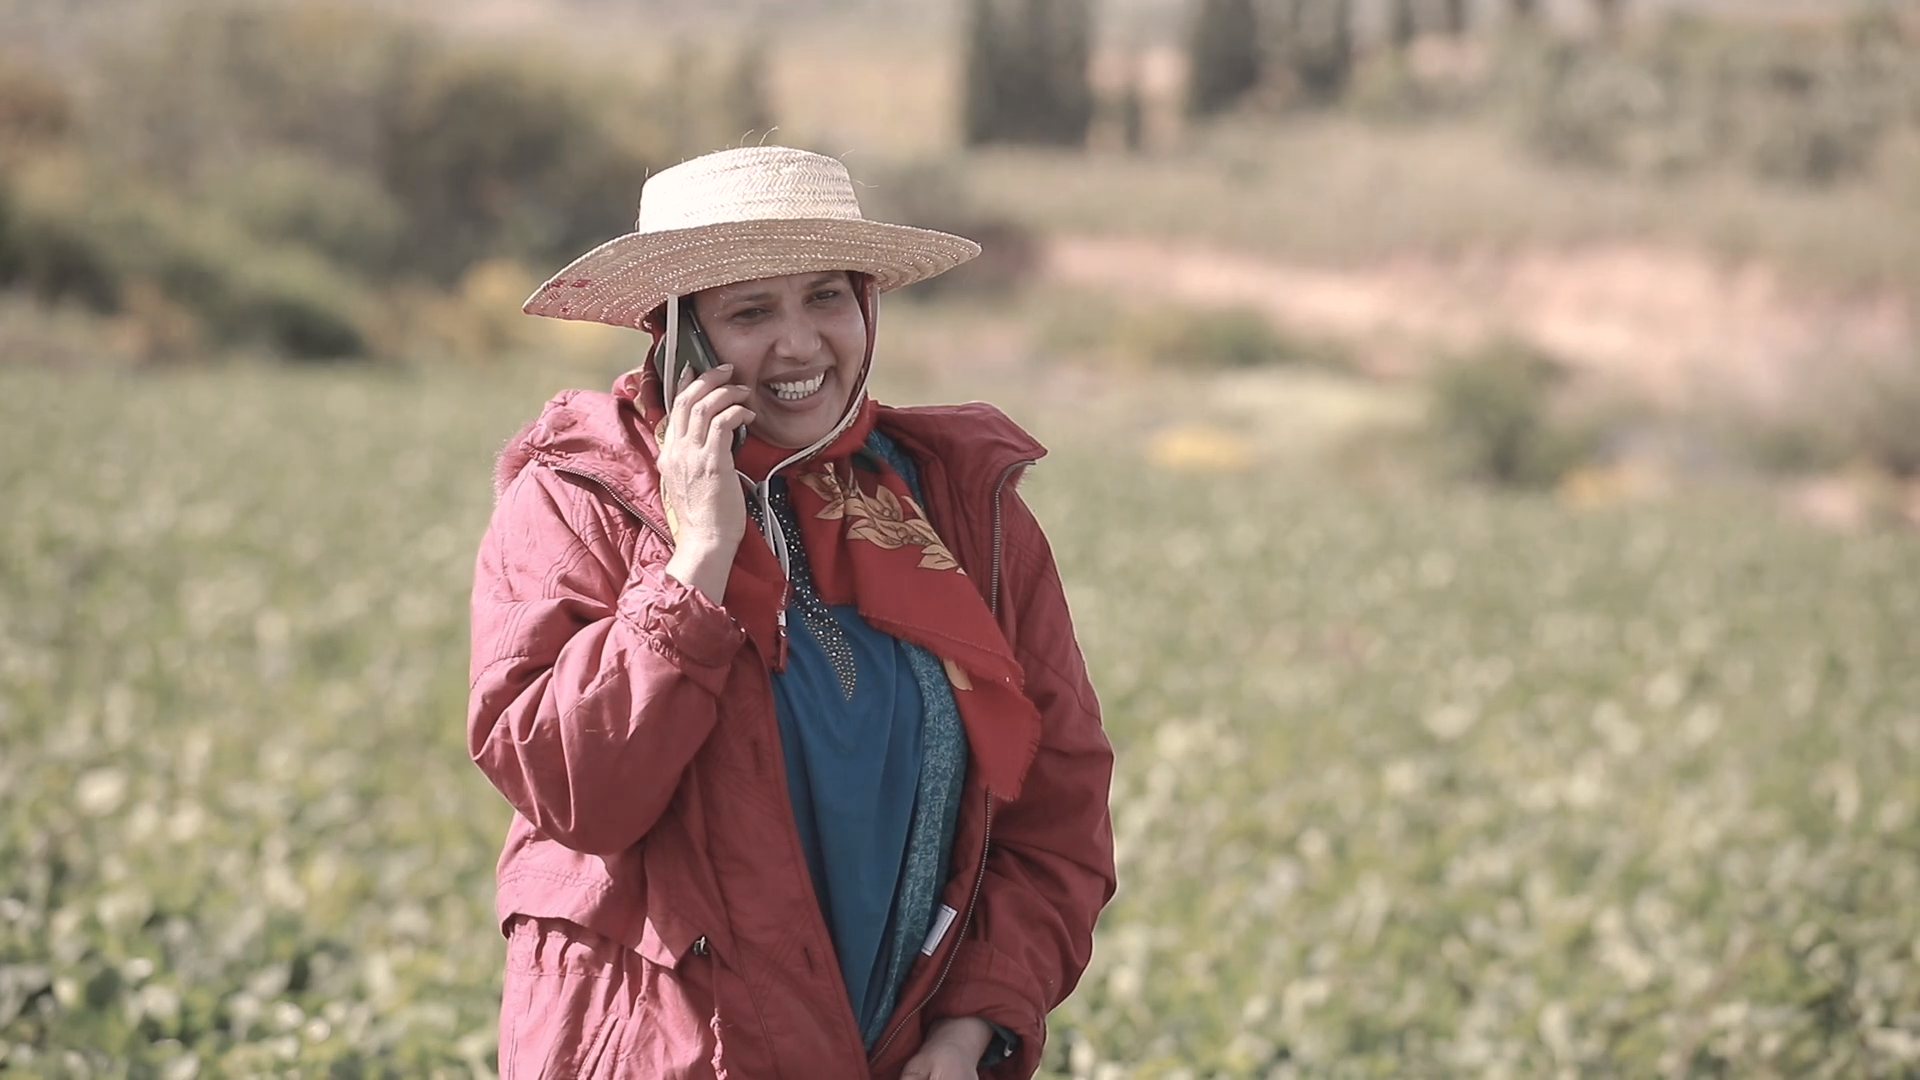 Woman walking in rural area while talking on a mobile phone